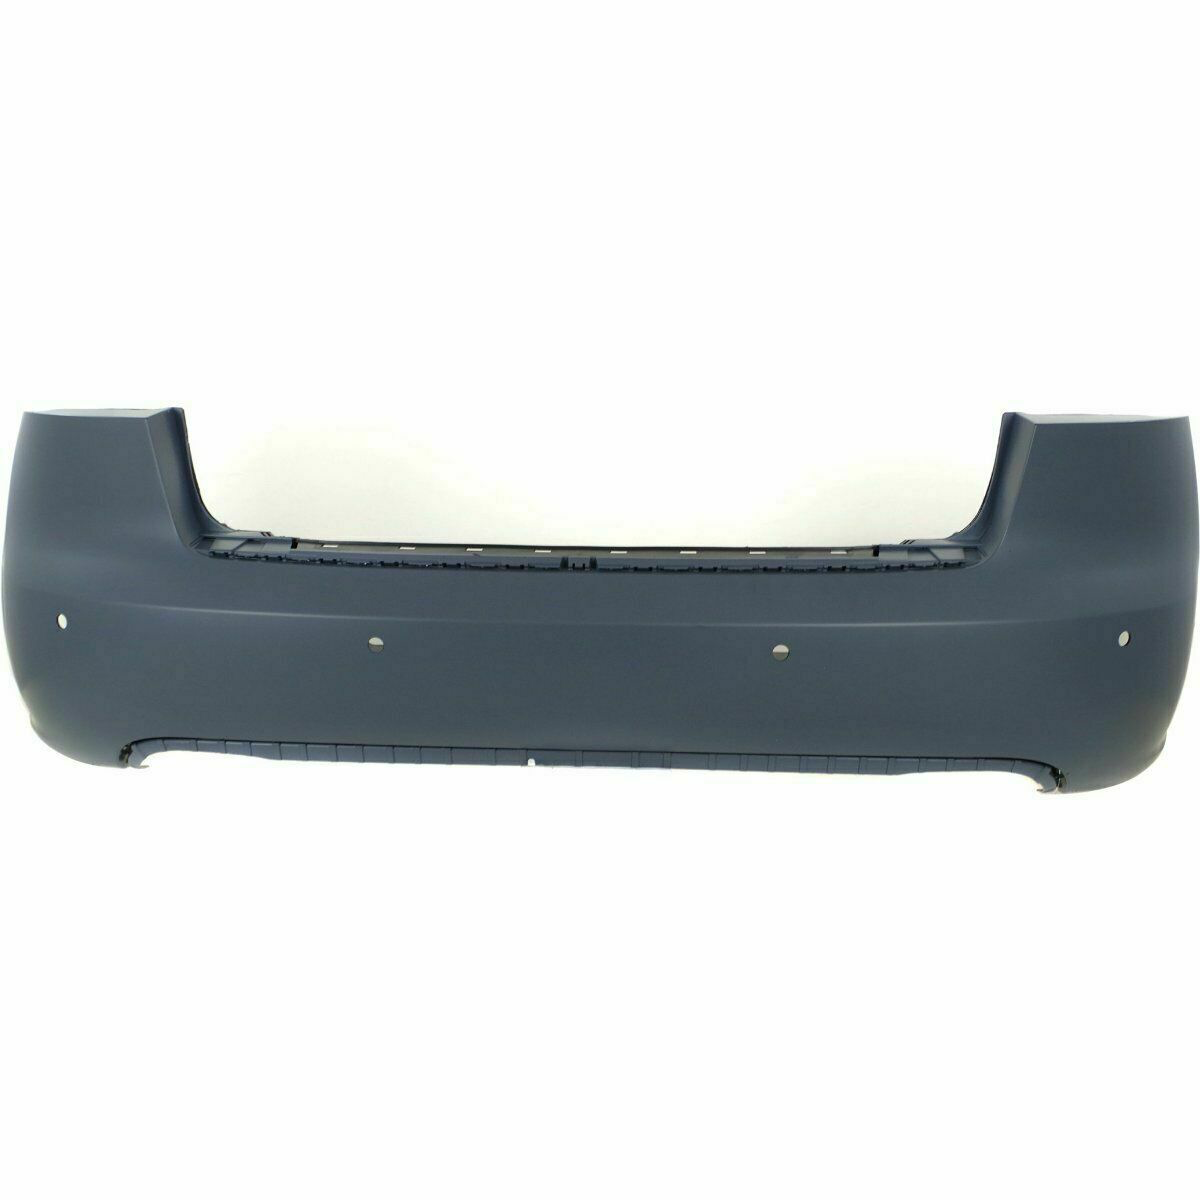 2005-2008 AUDI A4, Rear bumper W/ Sensor hole AU1100163 Painted to Match